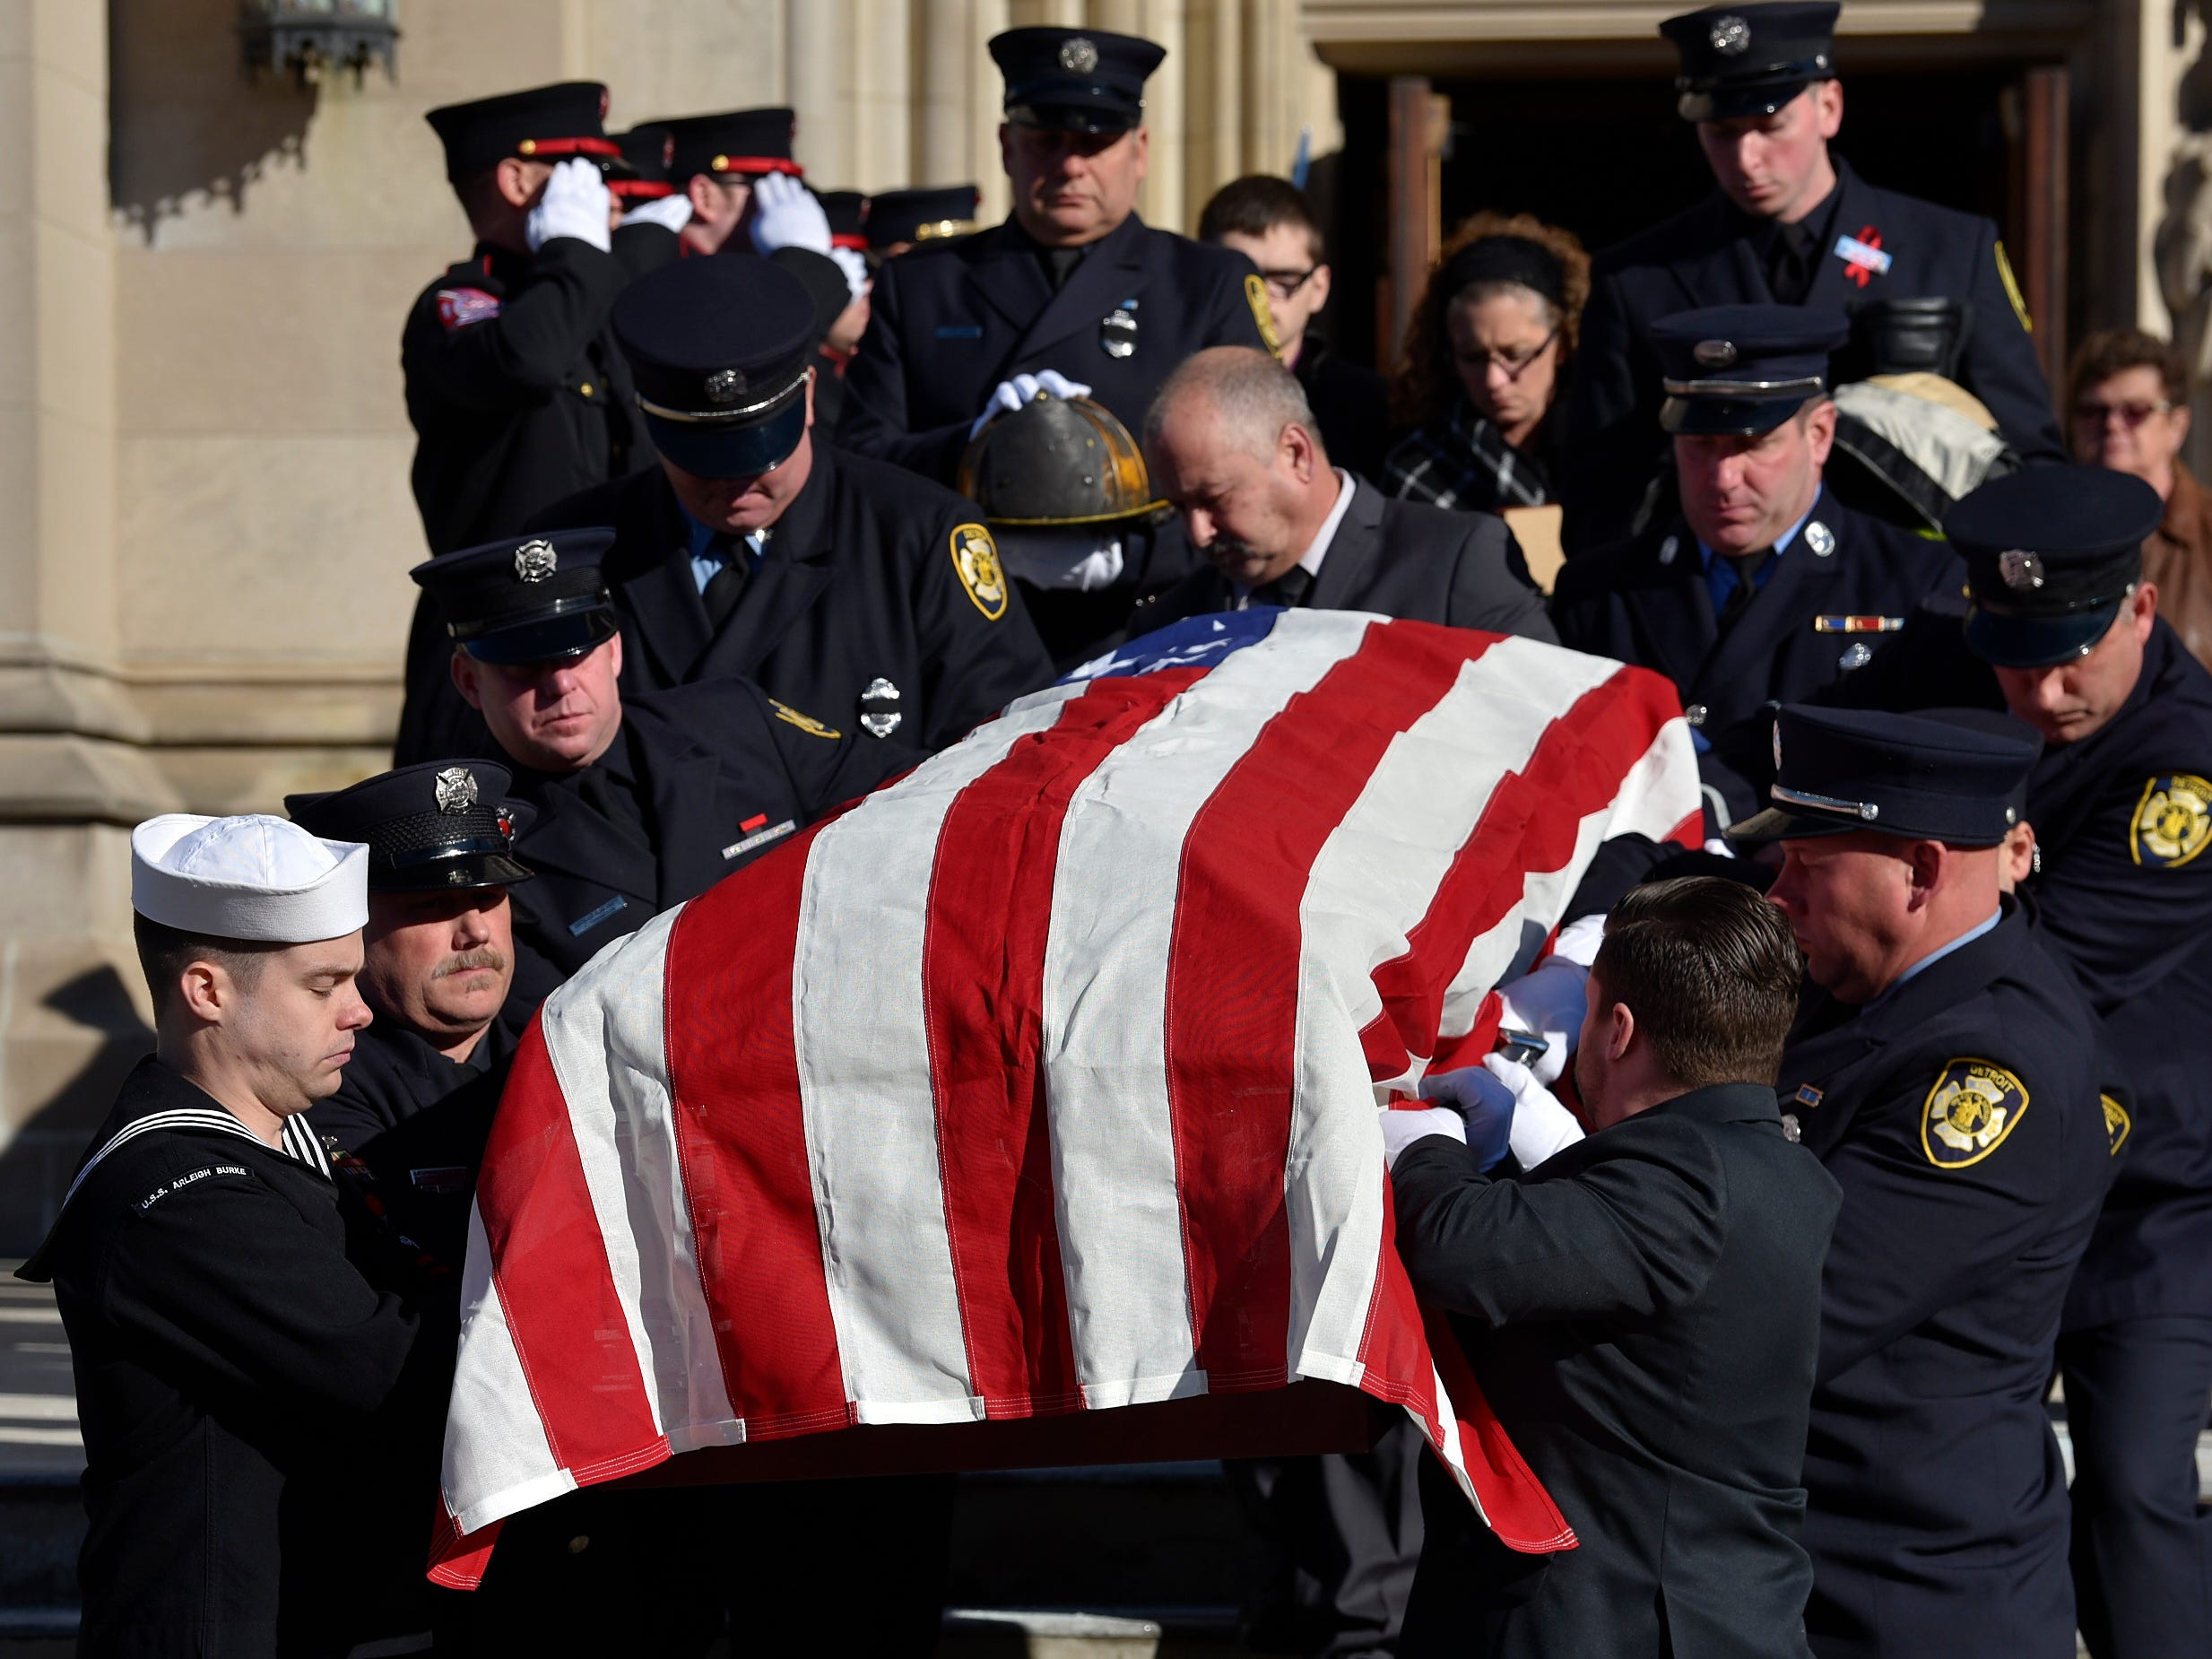 Pall bearers carry the casket of fallen Detroit firefighter Michael Lubig.